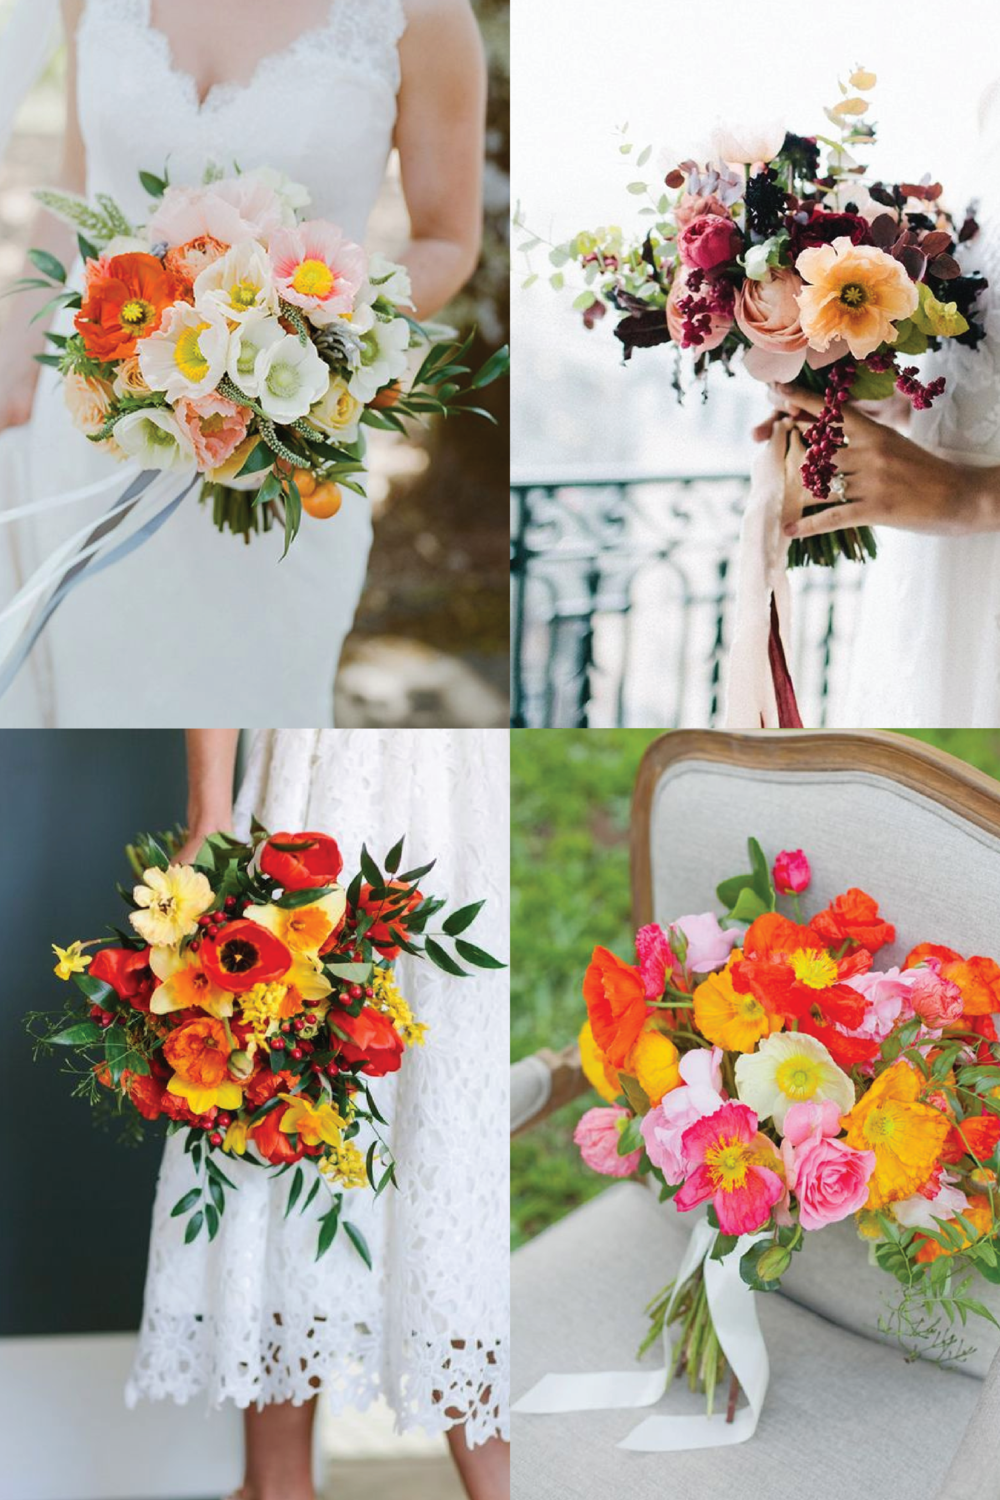 From clockwise, from top left:  flowers by  Alicia K Designs  and photo by  Christina McNeill ; flowers by  Lily Paloma  and photo by  Shannen Natasha ; flowers by  Calie Rose  and photo by  Mere Photo ; flowers by  Flower Talk  and photo by  Angela Higgin .